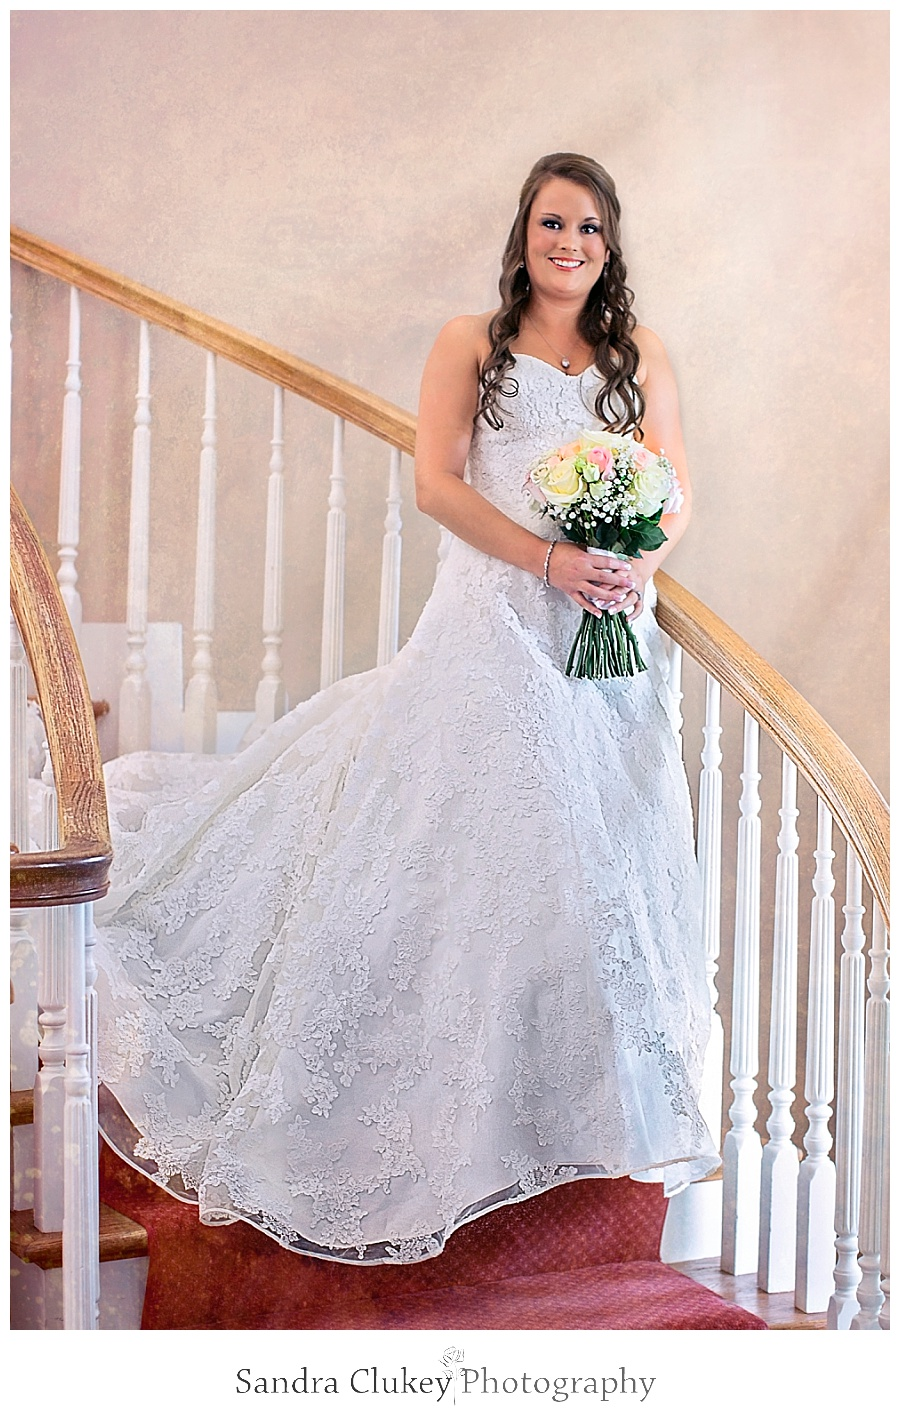 Beautiful Bride on Stairs at Whitestone Inn